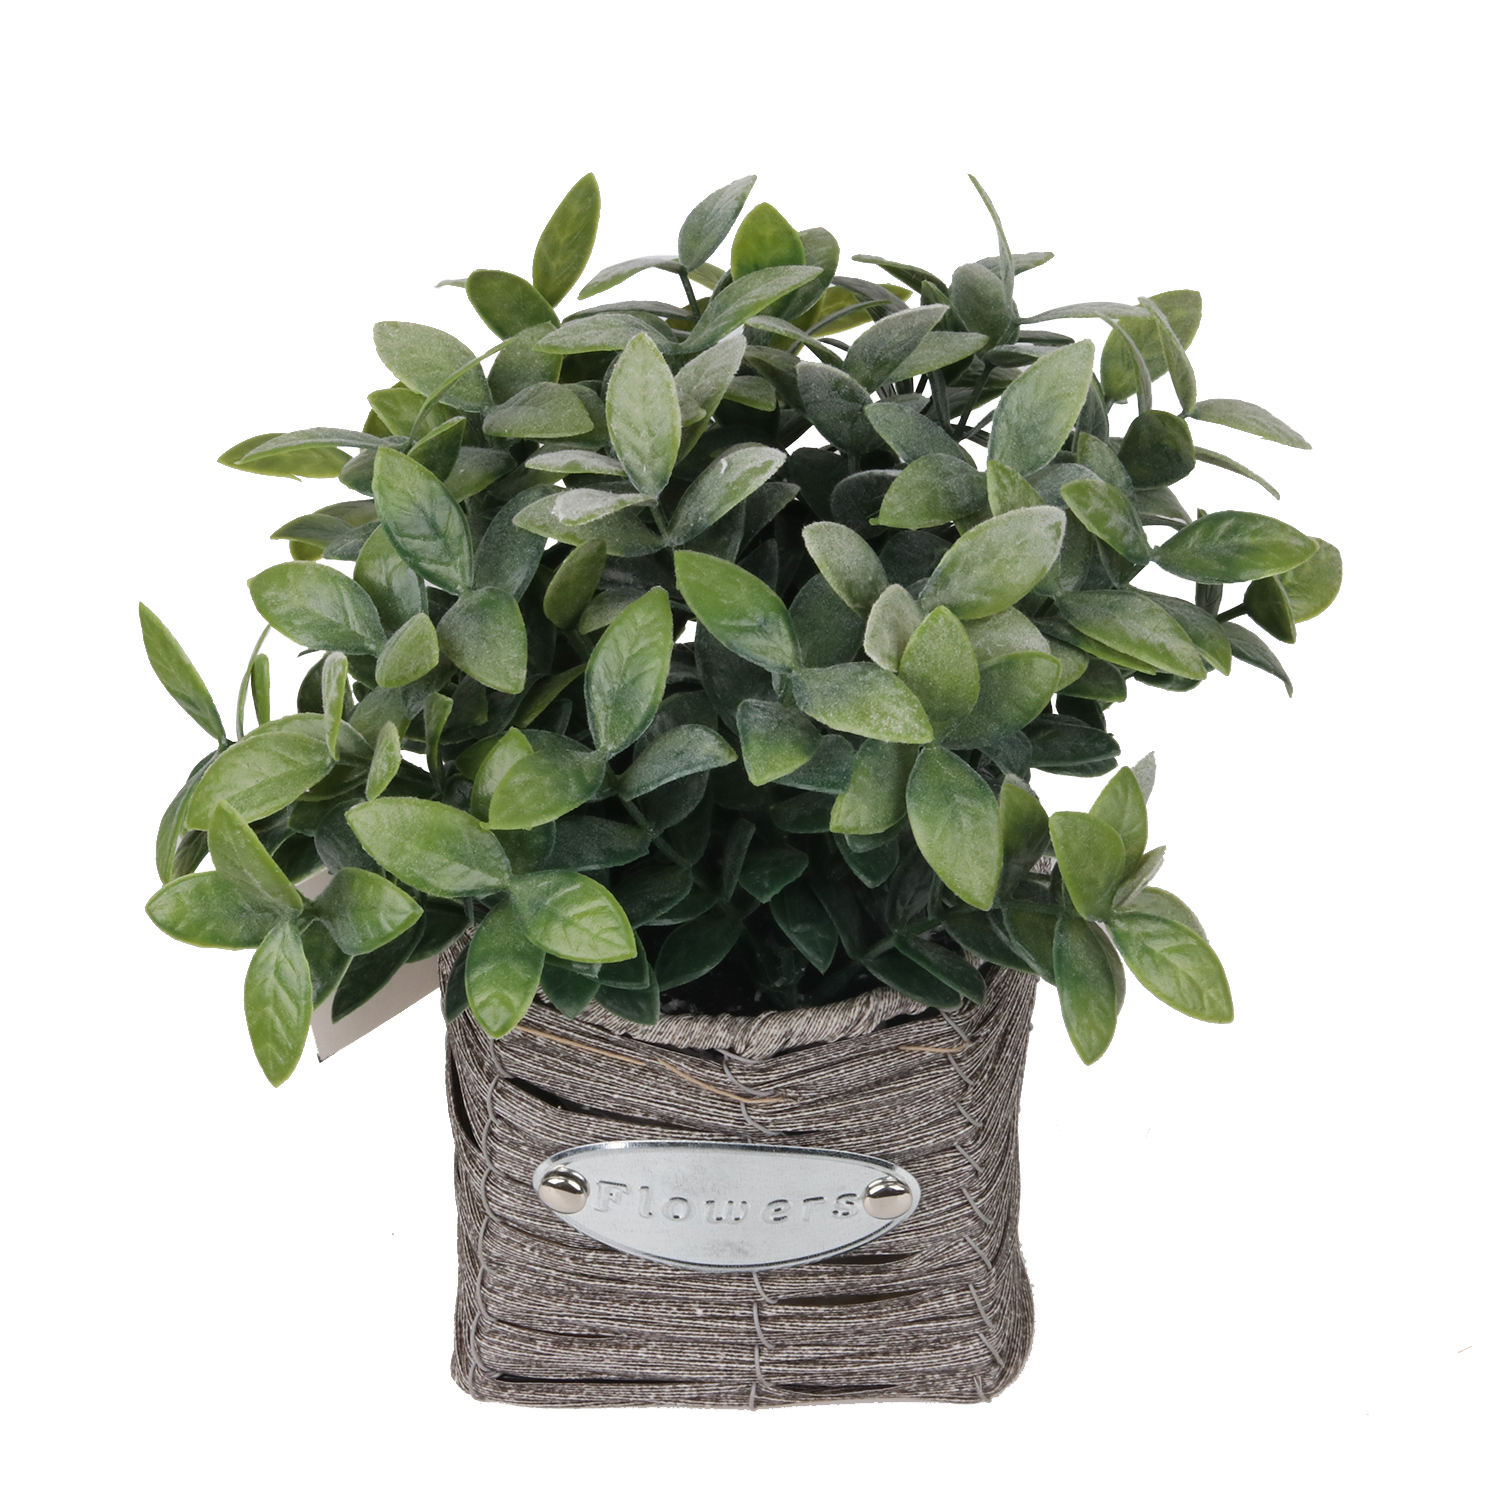 Artificial decorative plants real touch 22 cm green leaves potted artificial bonsai plants for indoor home office decoration